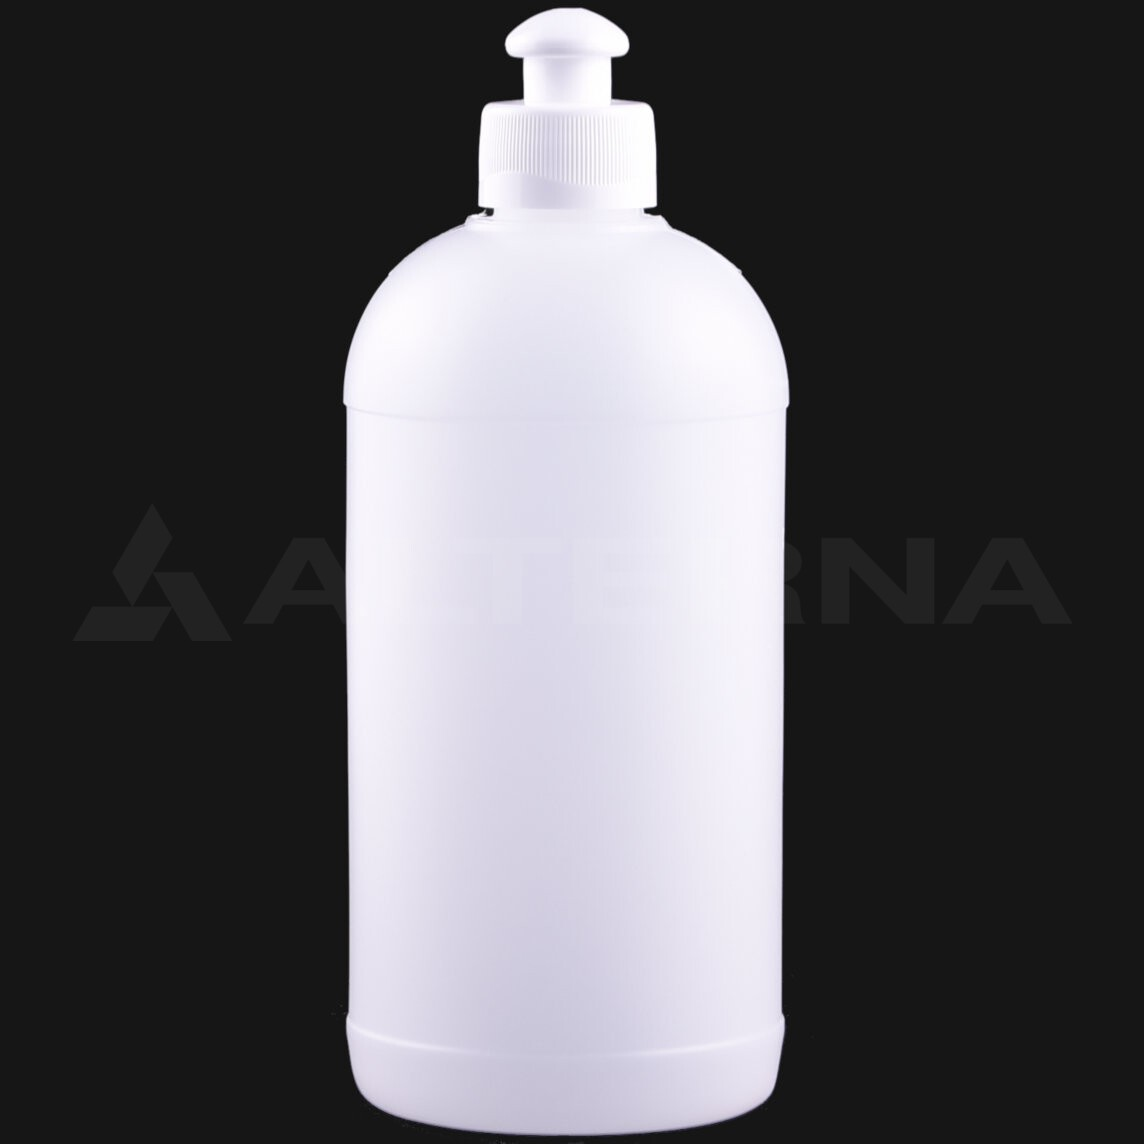 500 ml HDPE Bottle with 28 mm Push Pull Cap